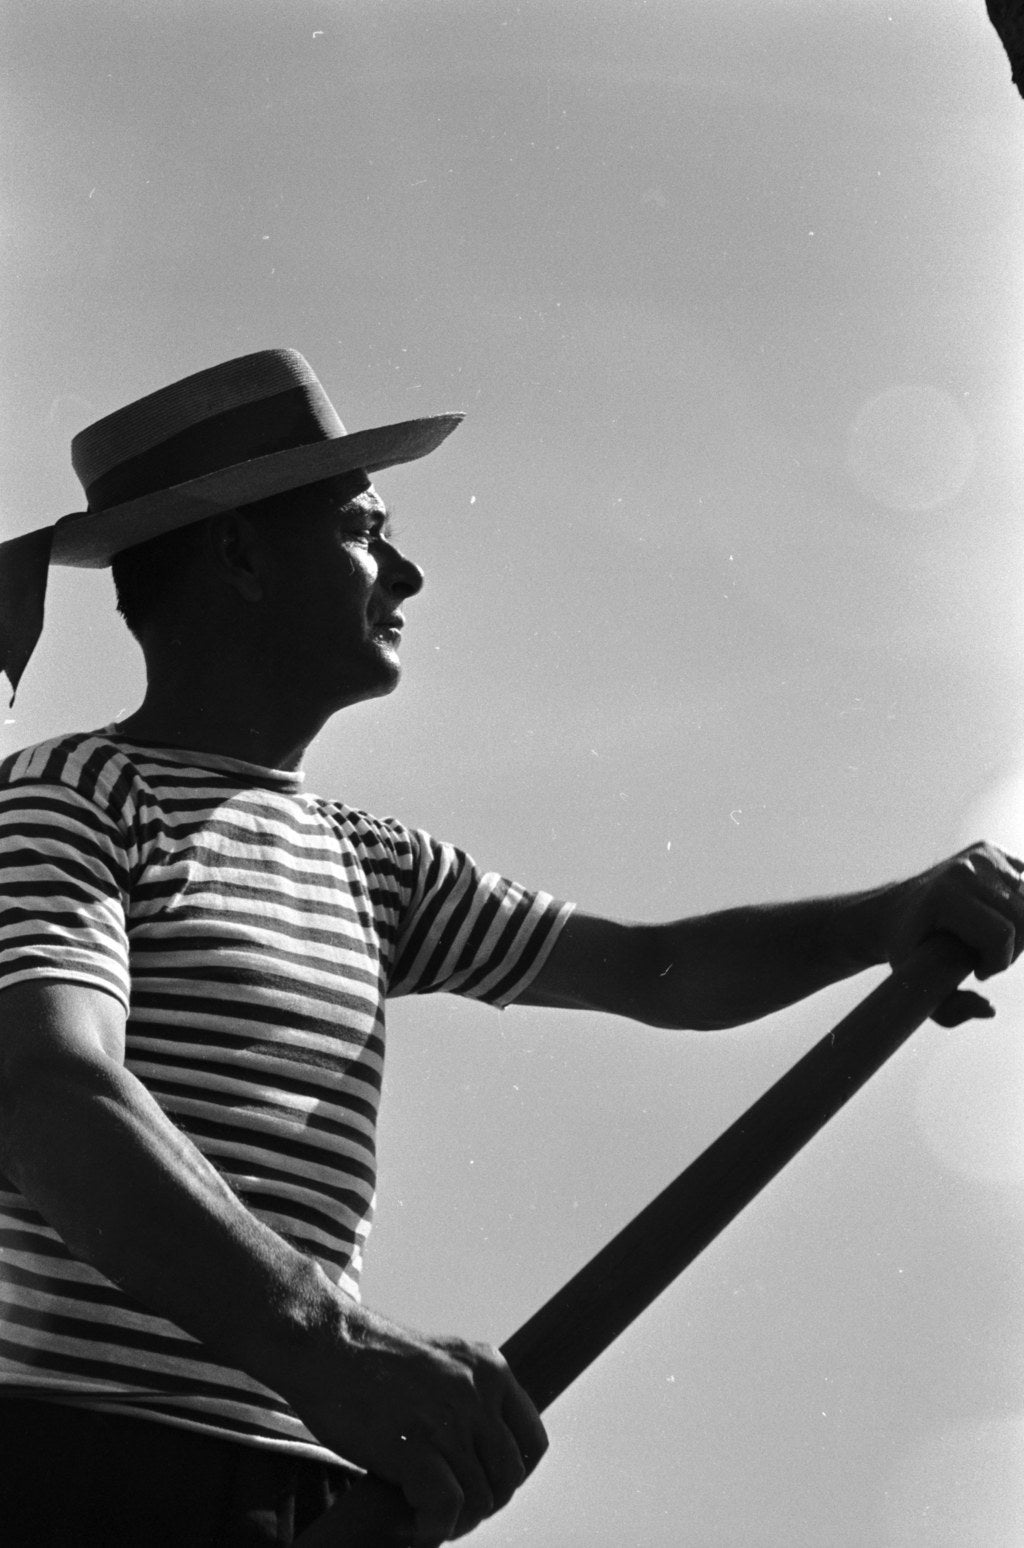 A gondolier plies his trade. Circa 1955.